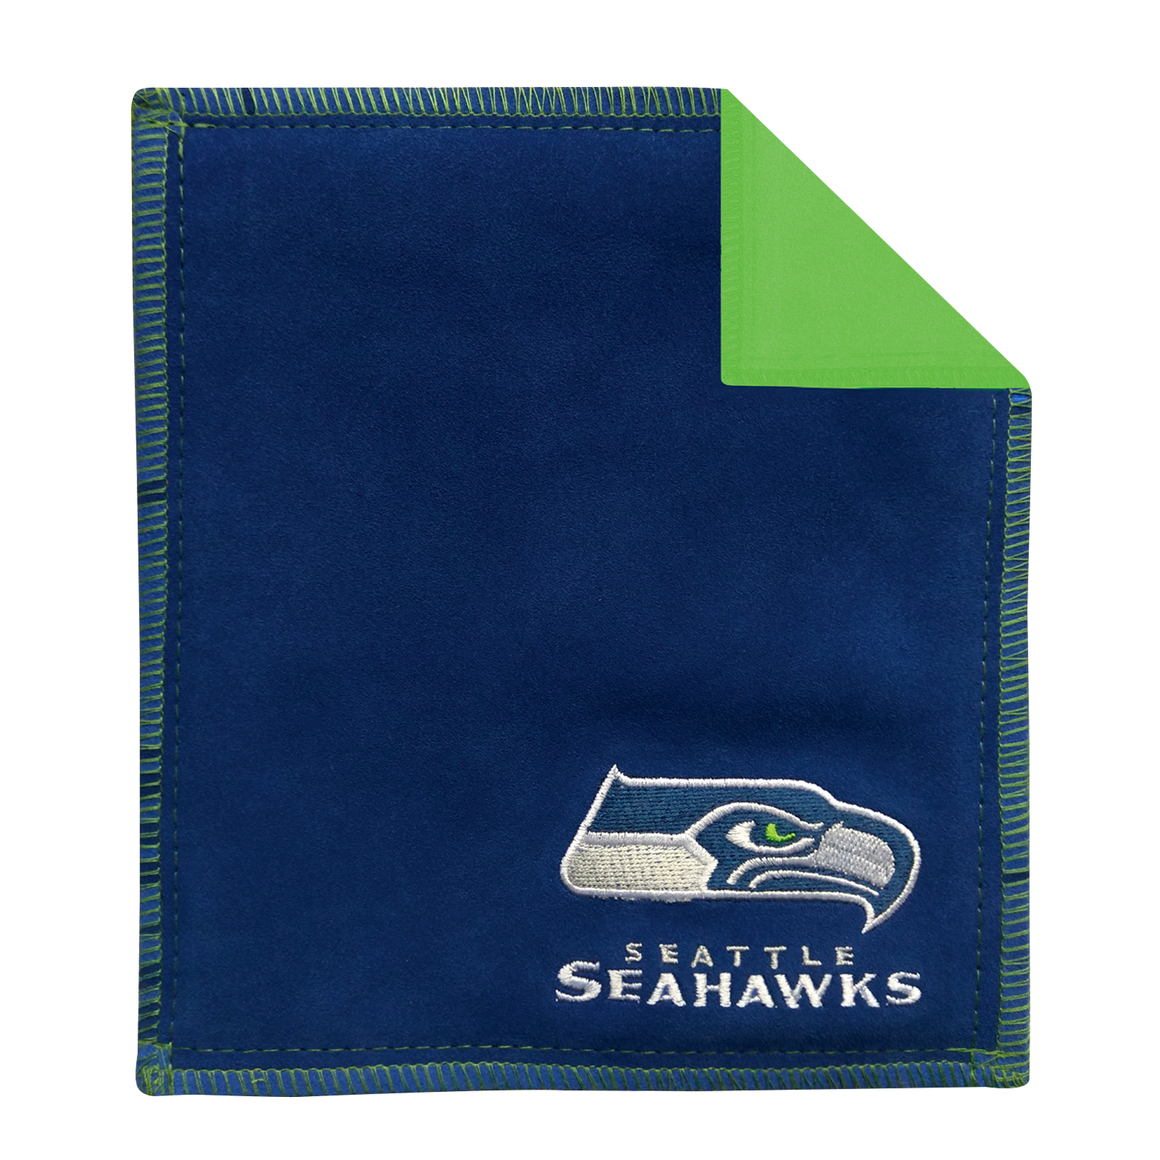 Seattle Seahawks bowling shammy towel for bowlers clean wipe sling for bowling balls